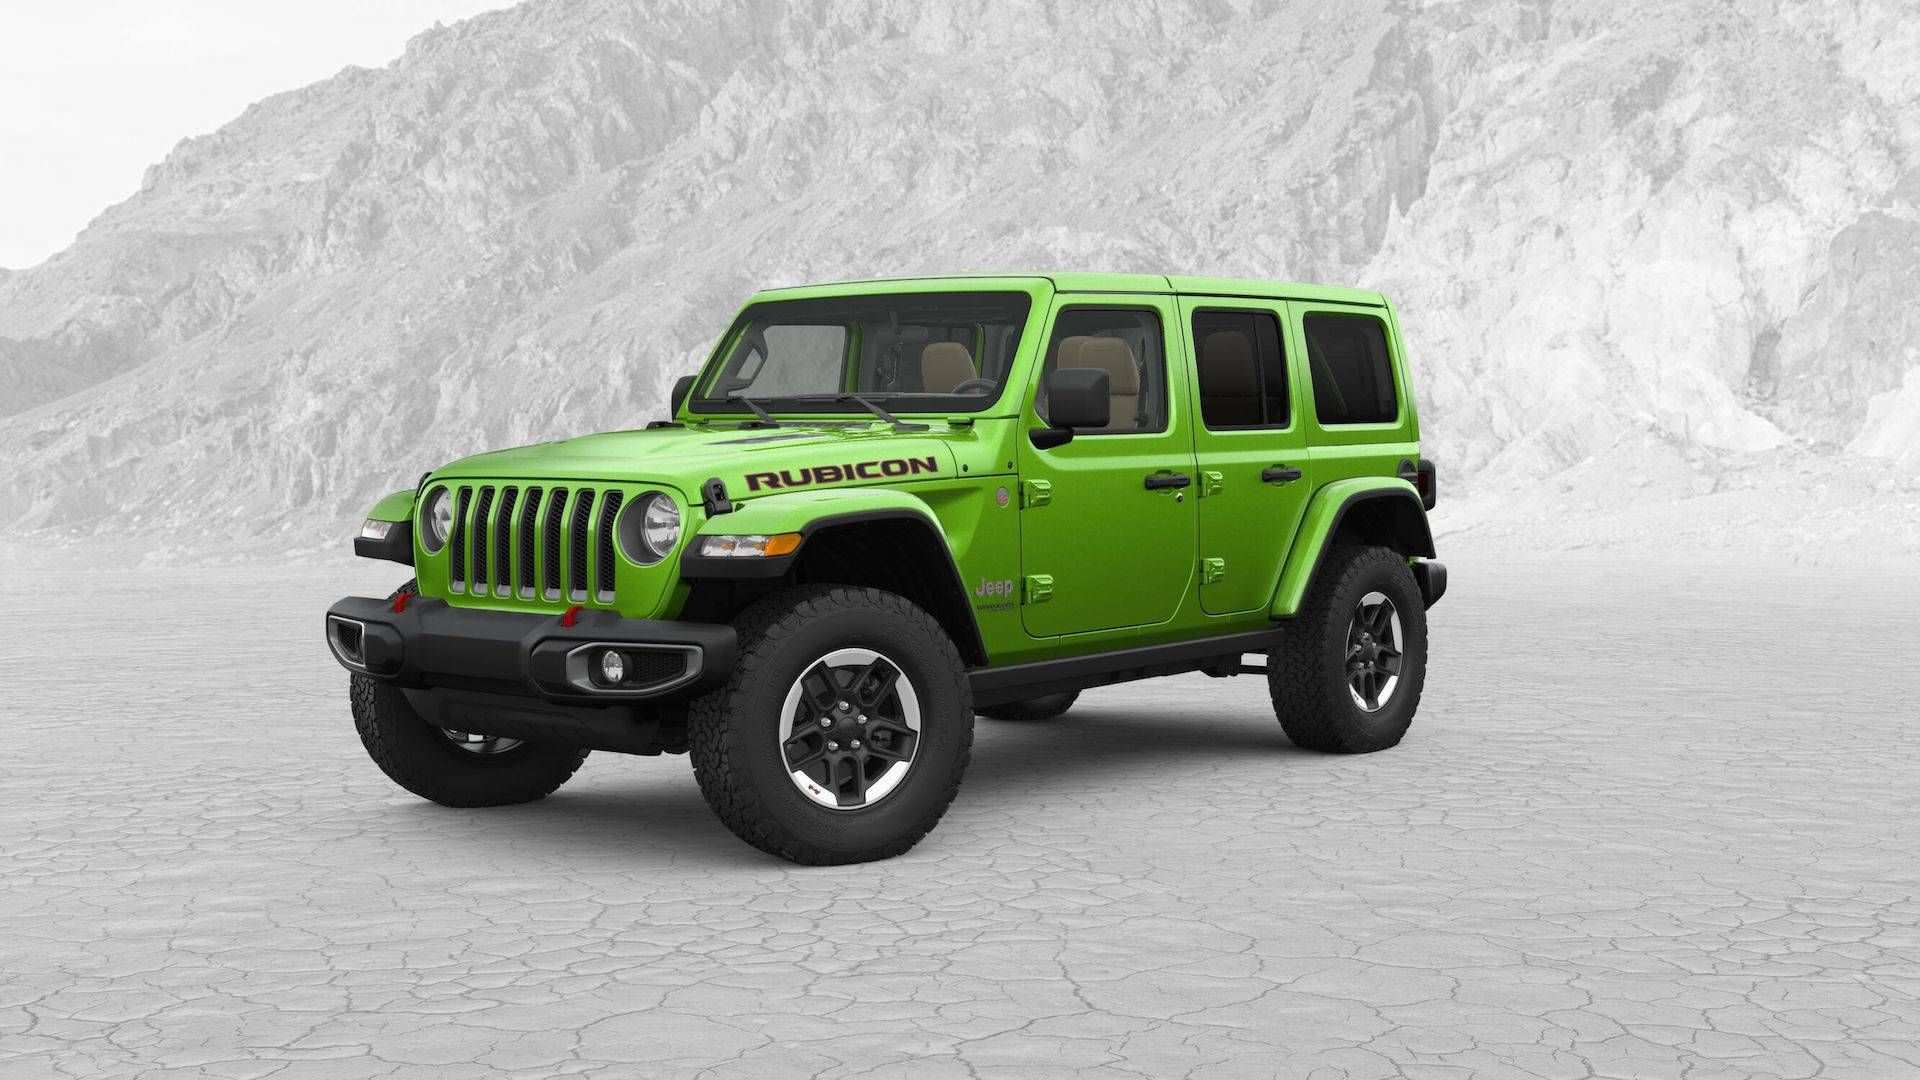 38 Great 2019 Jeep Build And Price Images with 2019 Jeep Build And Price